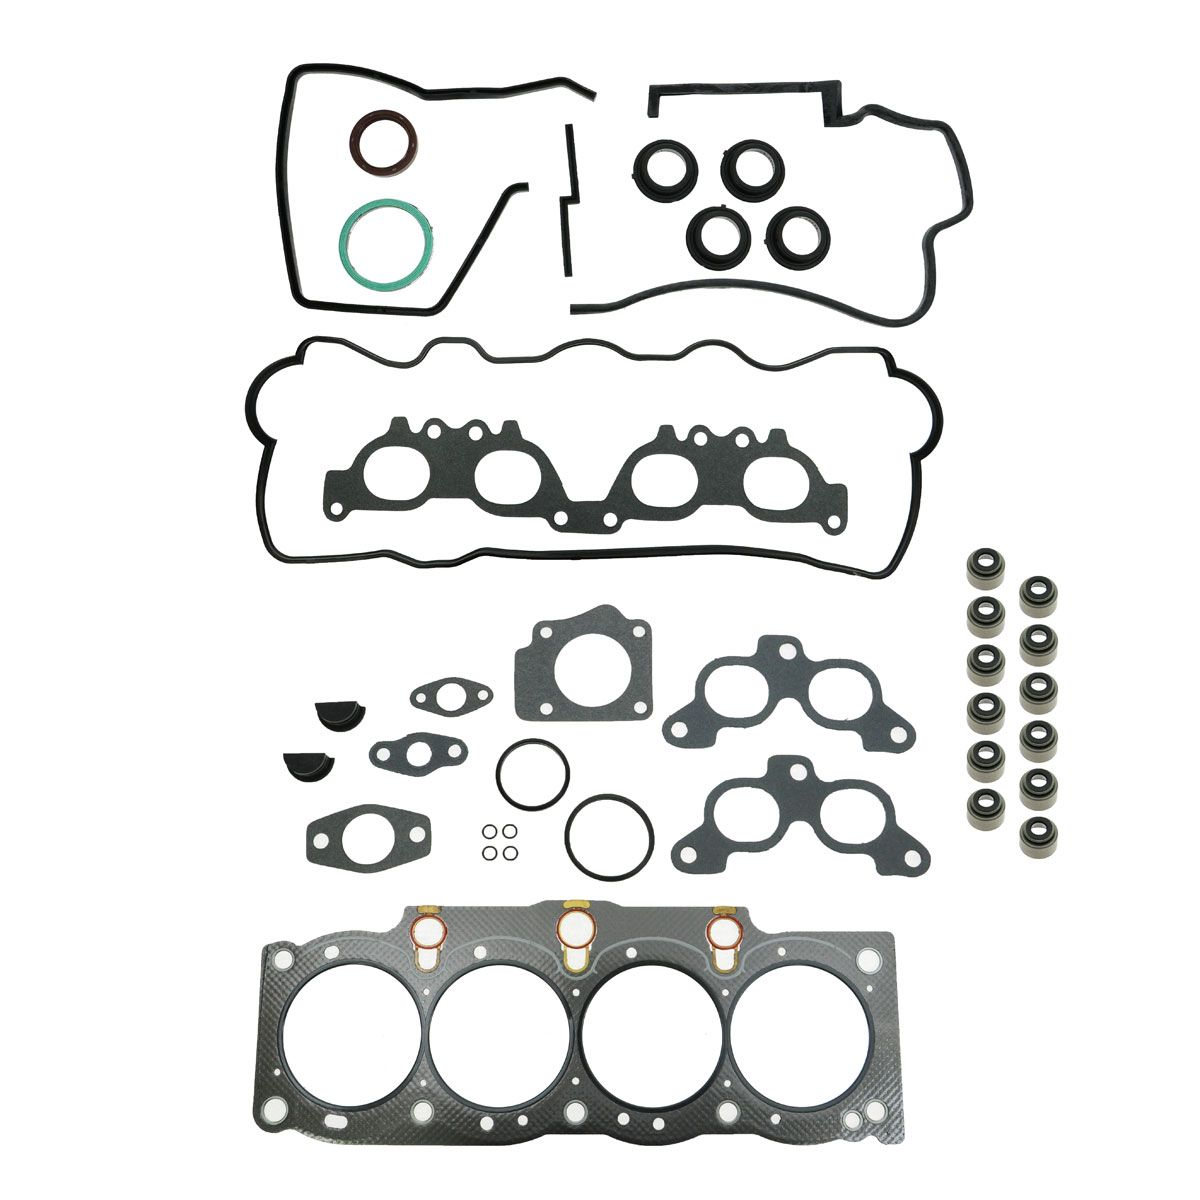 Engine Head Gasket Set Kit For Toyota Rav4 Mr2 Camry